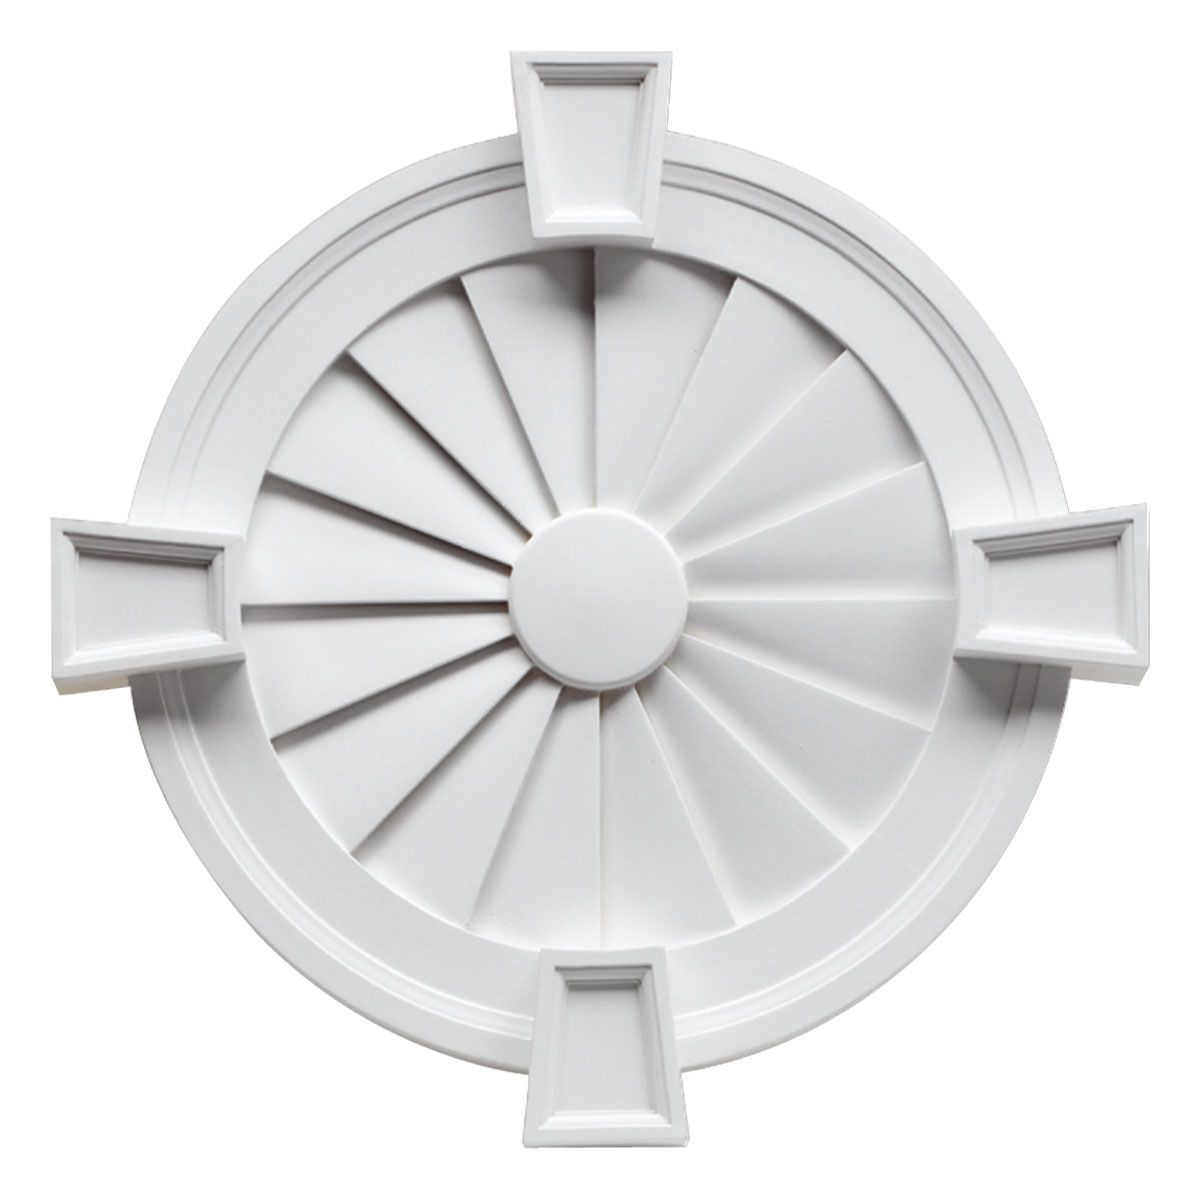 Attirant Primed Polyurethane Decorative Round Louver With Decorative Trim And  Keystone Smooth, At The Home Depot   Mobile